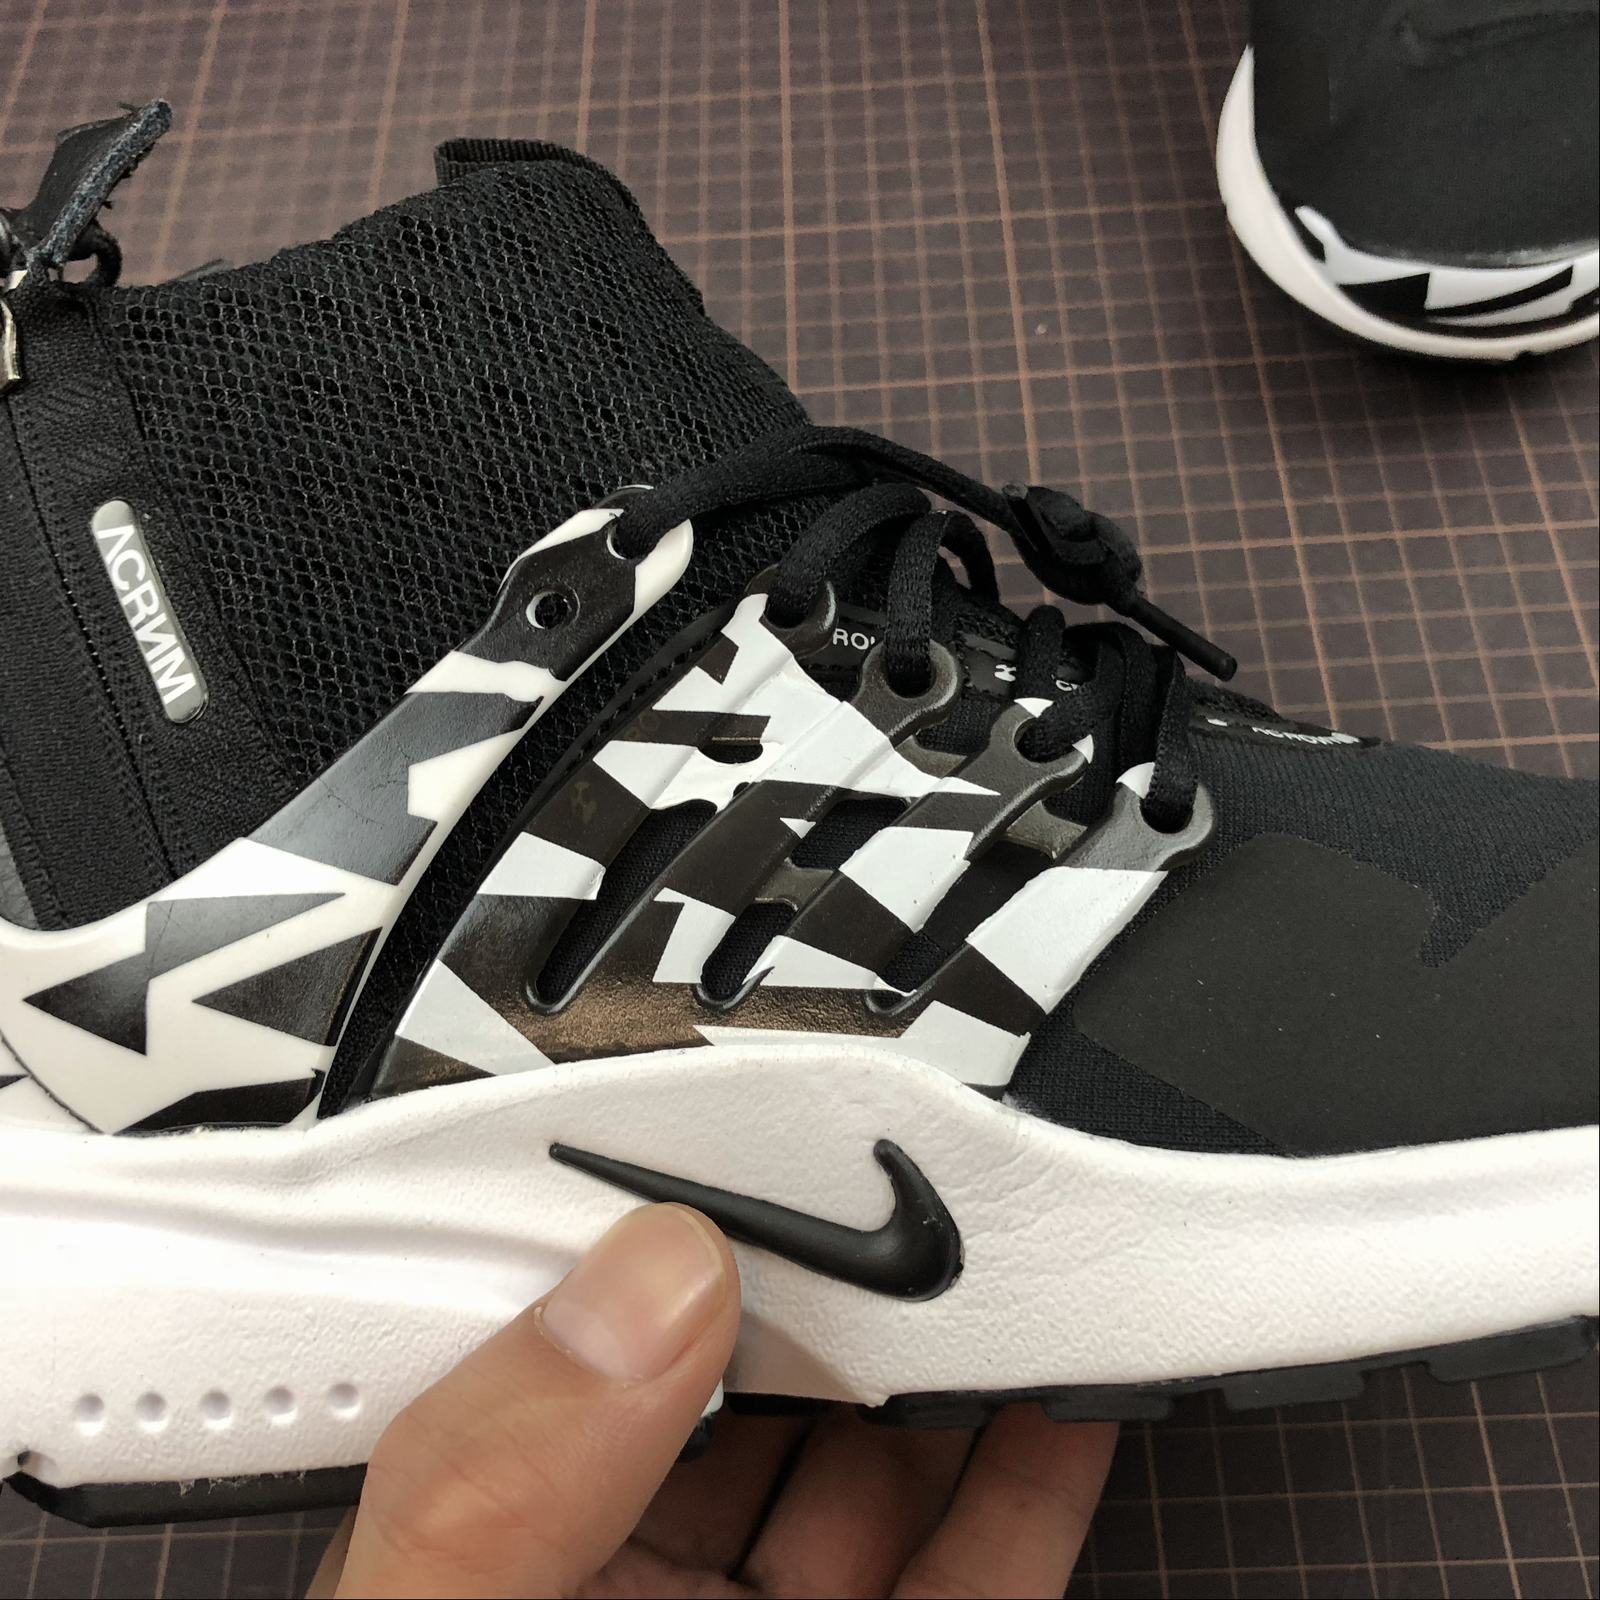 Мужские кроссовки Nike Air Presto Mid Acronym Men Black,White,Black - фото №9